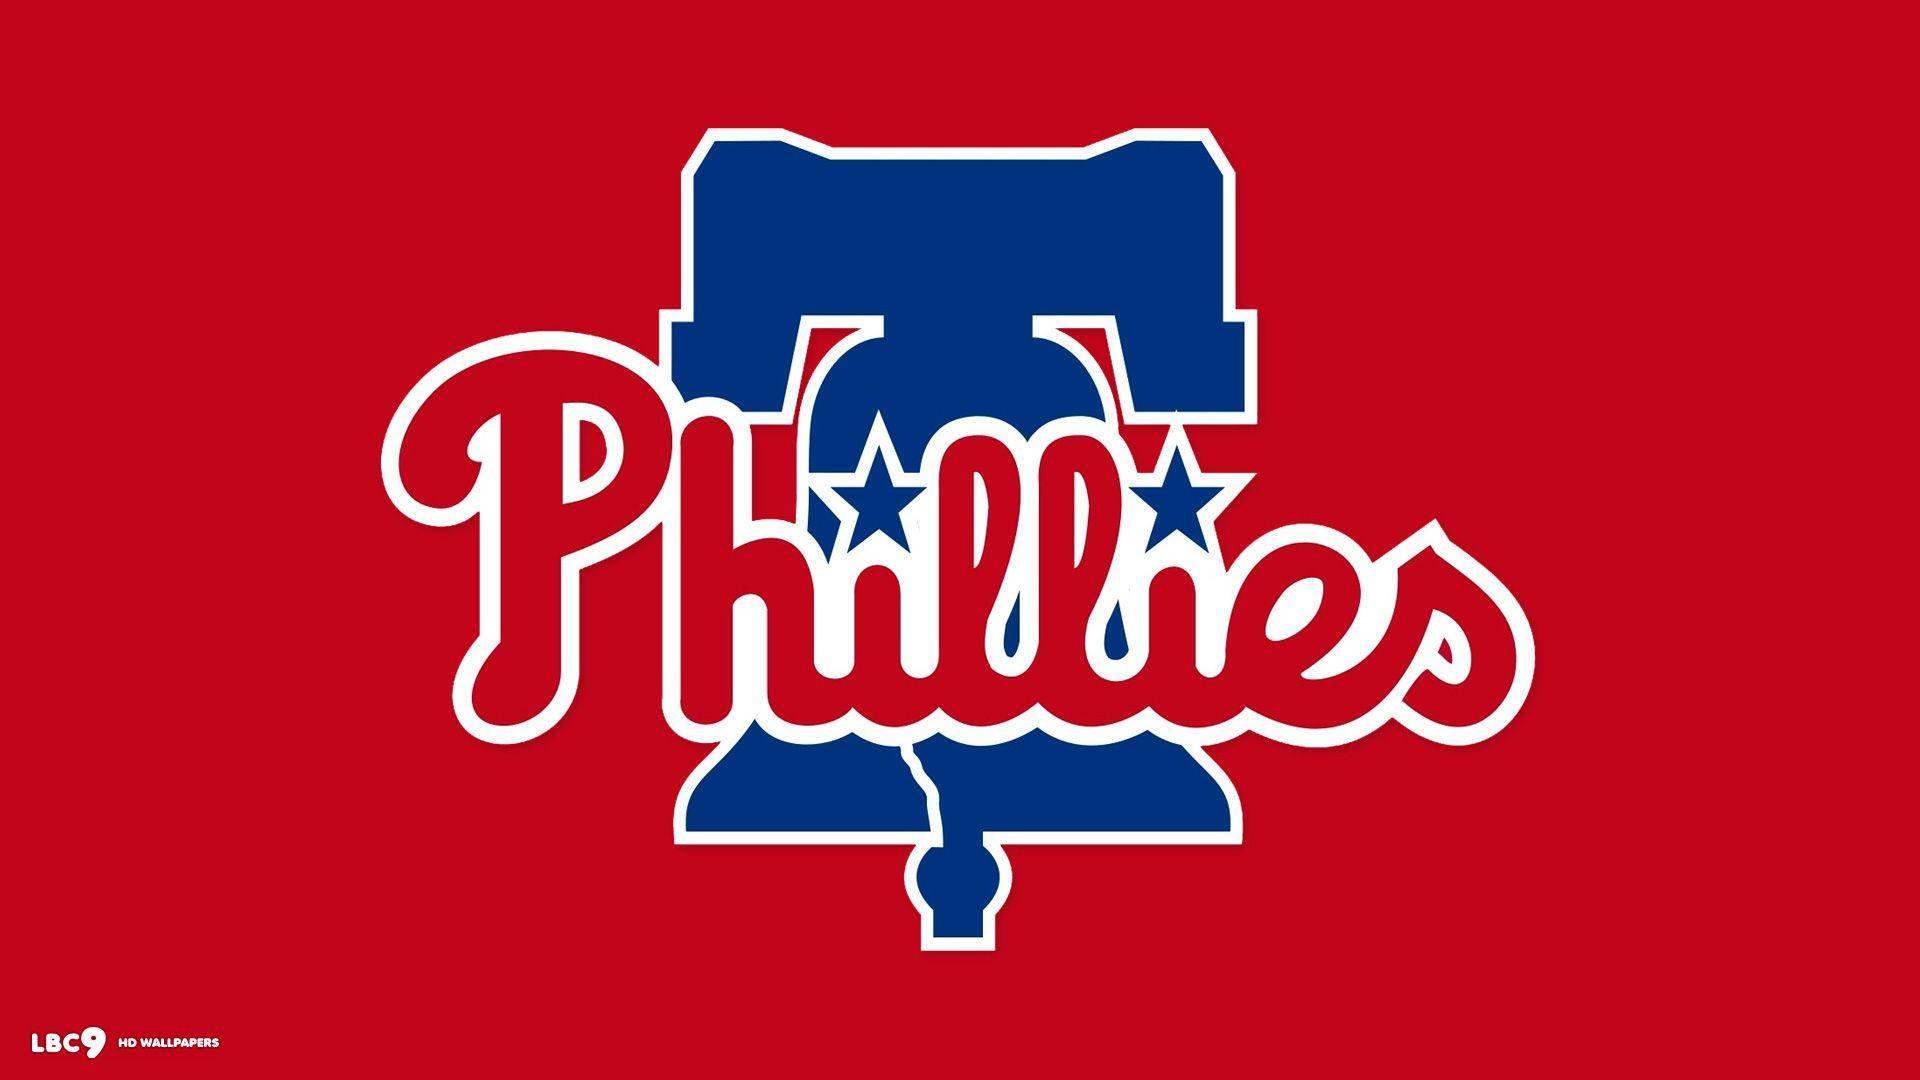 Philadelphia Phillies Wallpapers Hd 26102 Images | largepict.